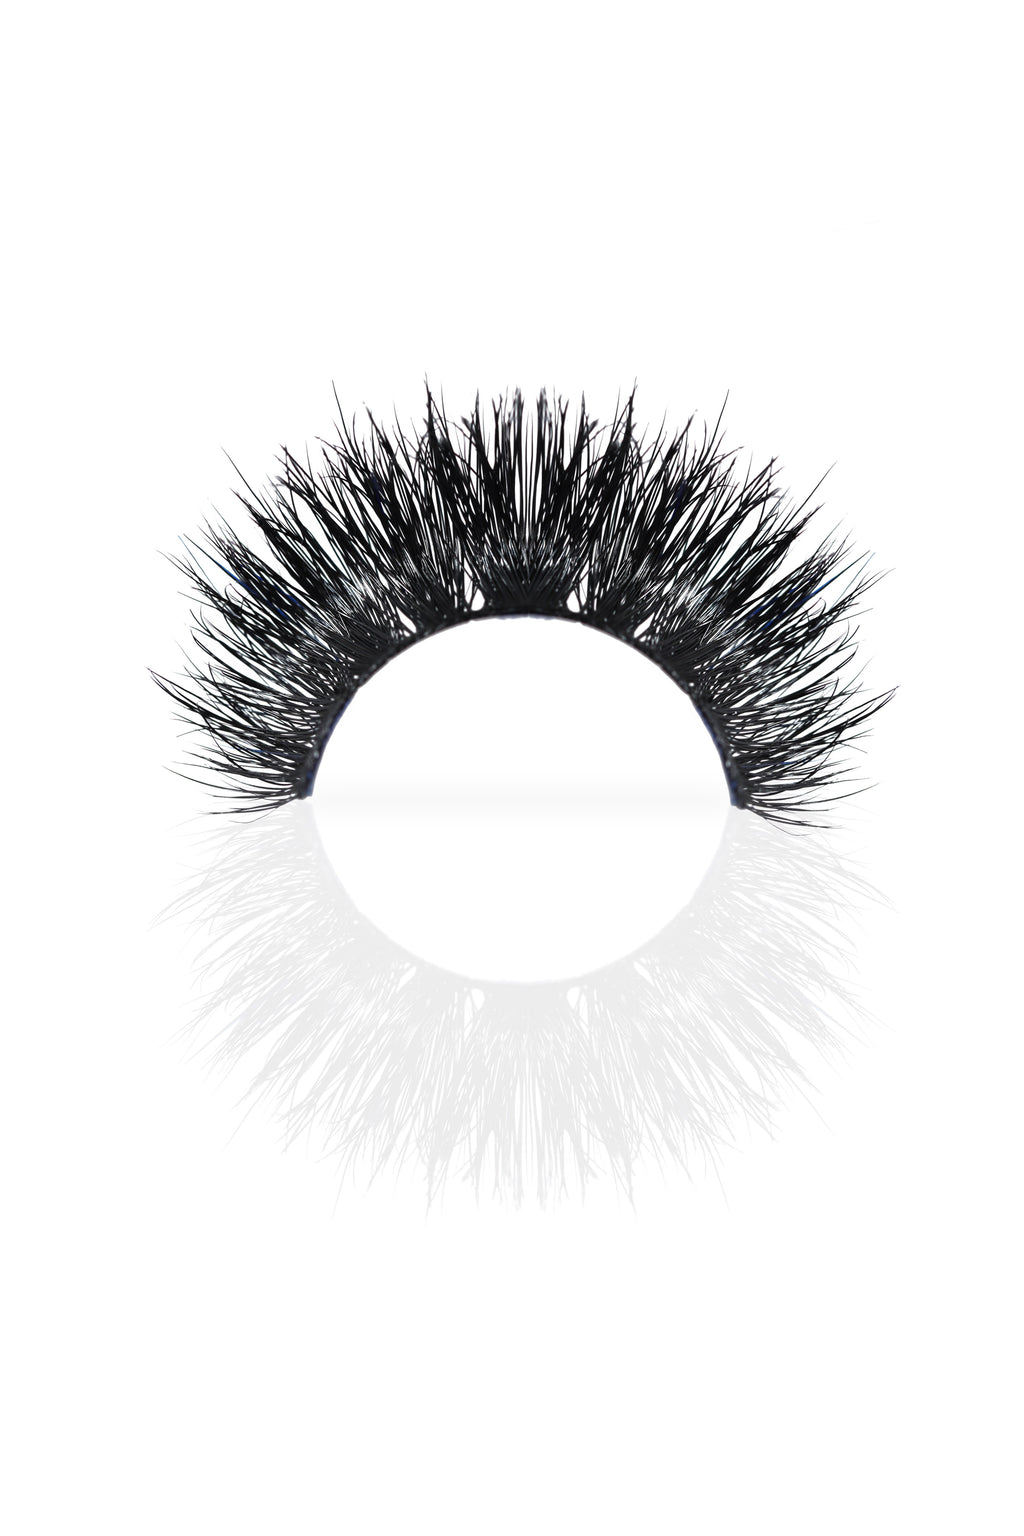 GB11 Luxury Mink Eyelashes